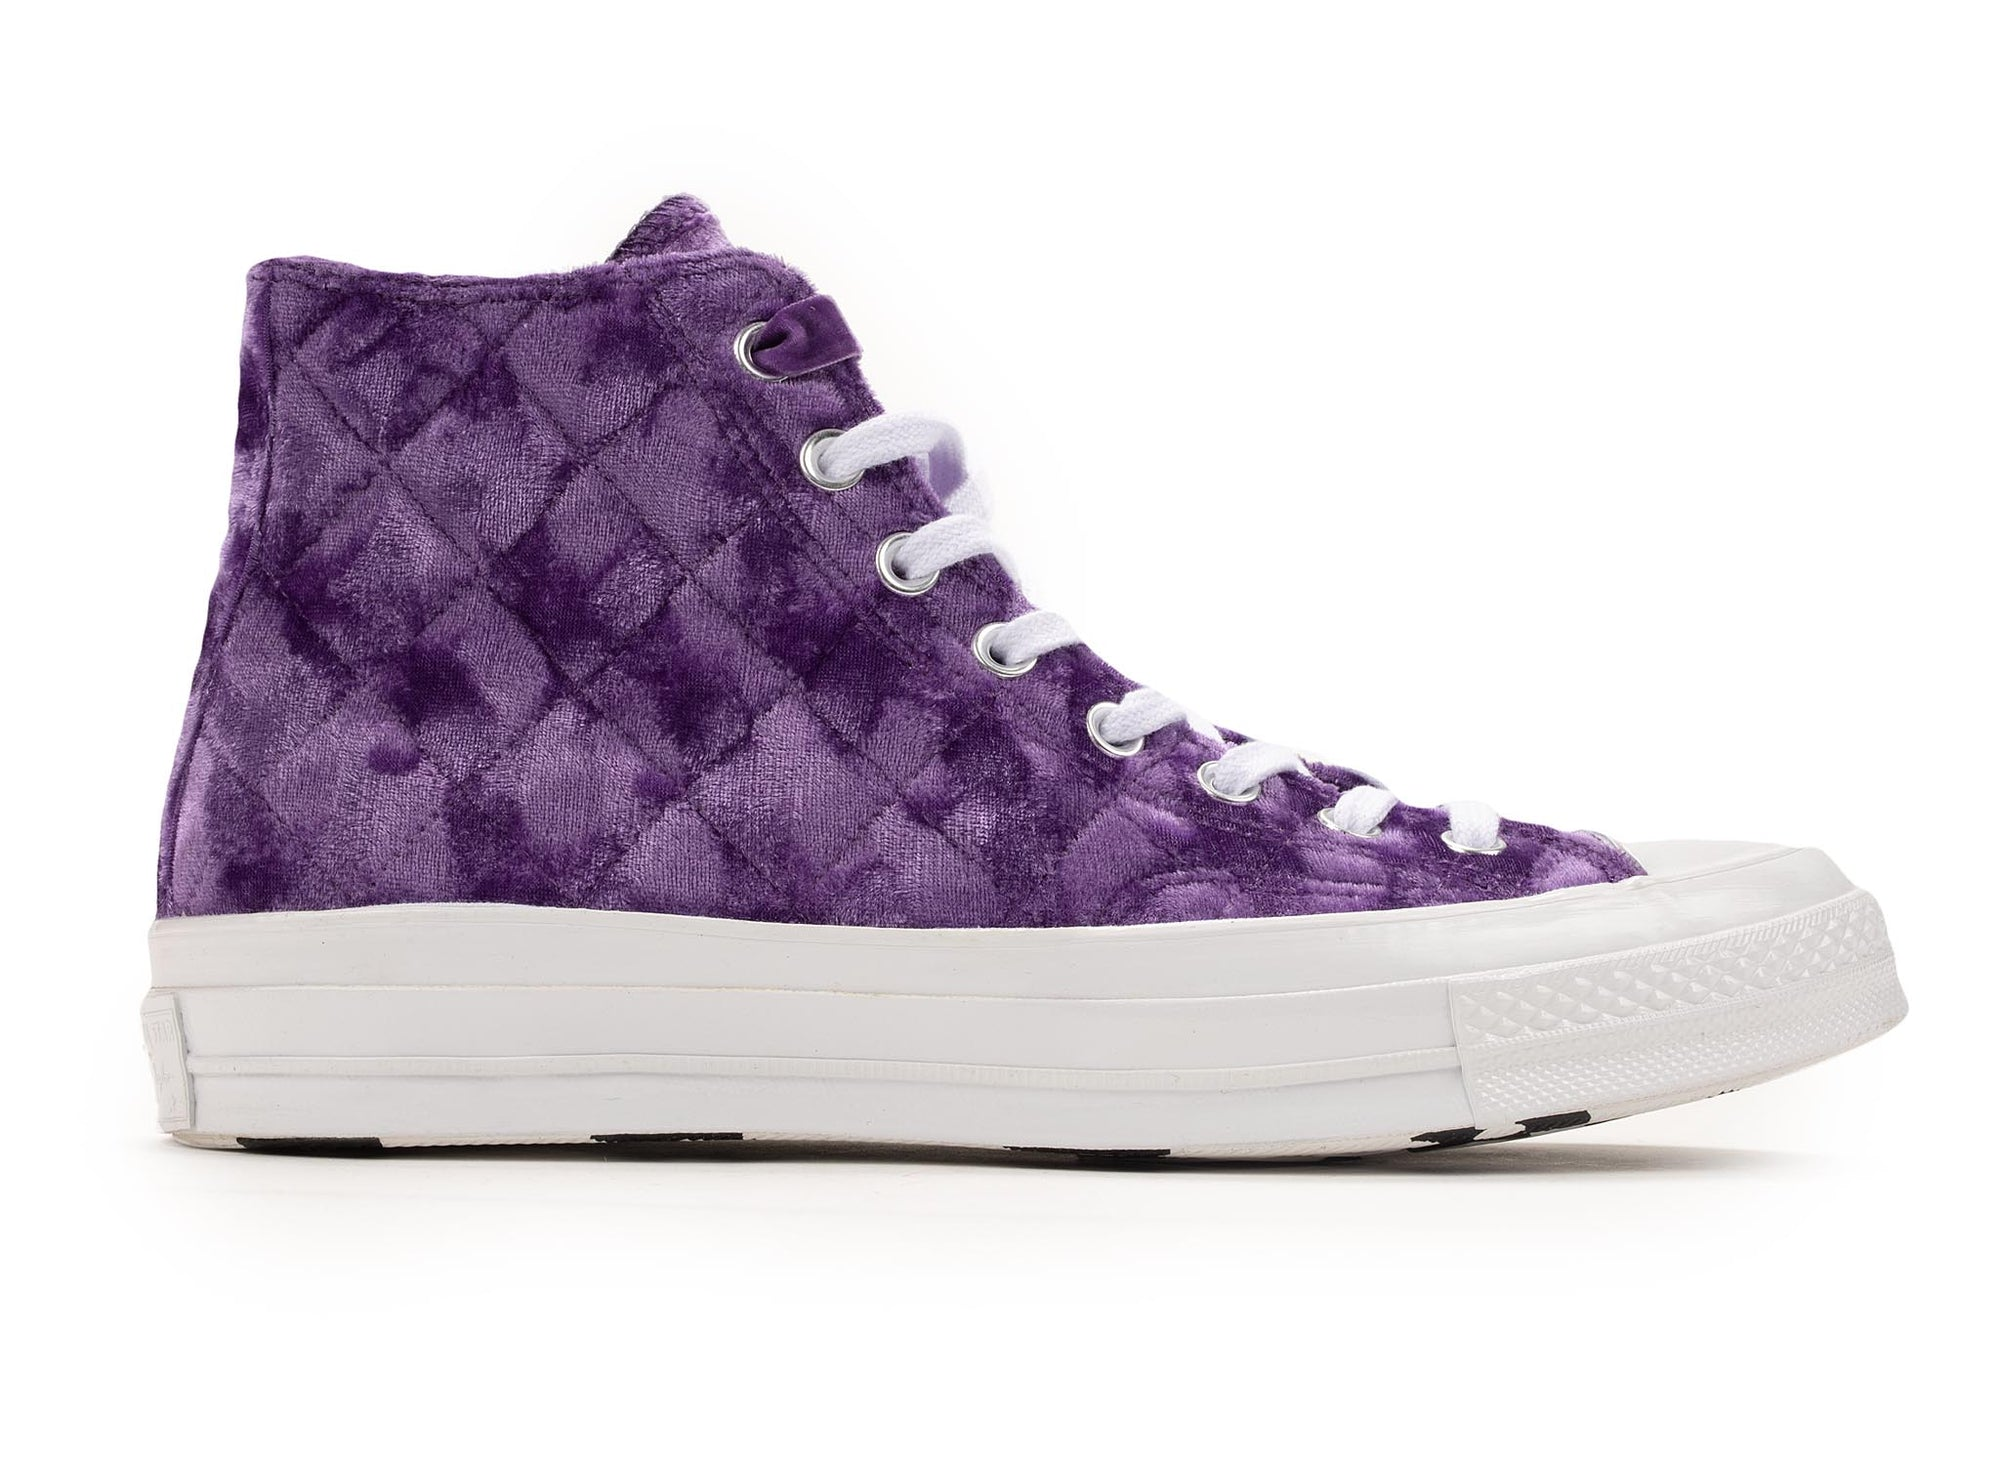 Converse Chuck Taylor All-Star 70s Hi Golf Le Fleur TTC Quilted Velvet 'Tillandsia Purple'